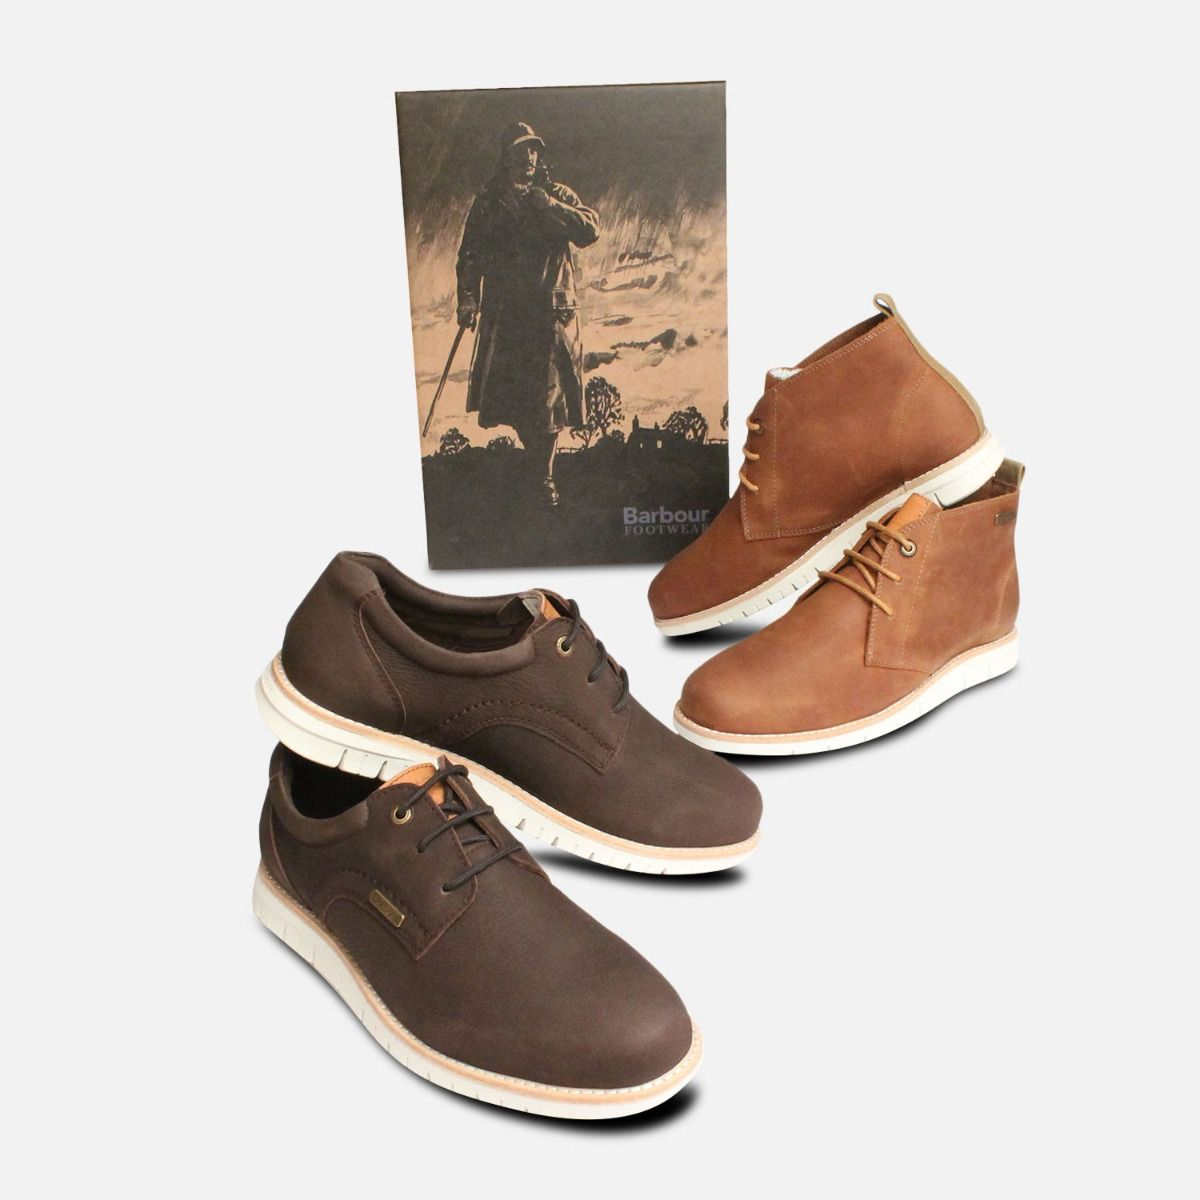 Barbour Mens Shackleton Casual Boots in Brown